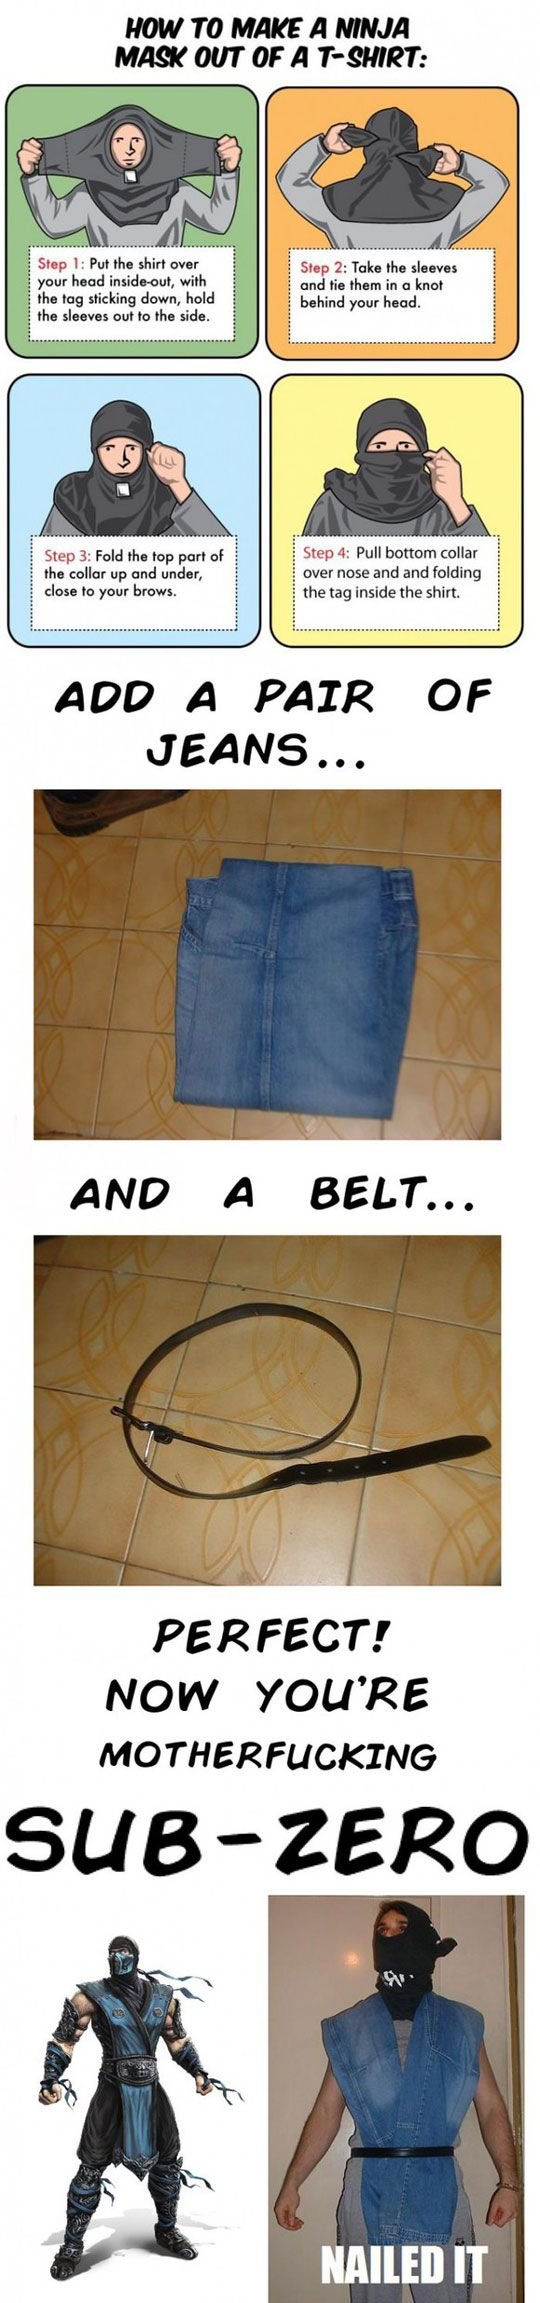 Cosplay For Beginners // funny pictures - funny photos - funny images - funny pics - funny quotes - #lol #humor #funnypictures